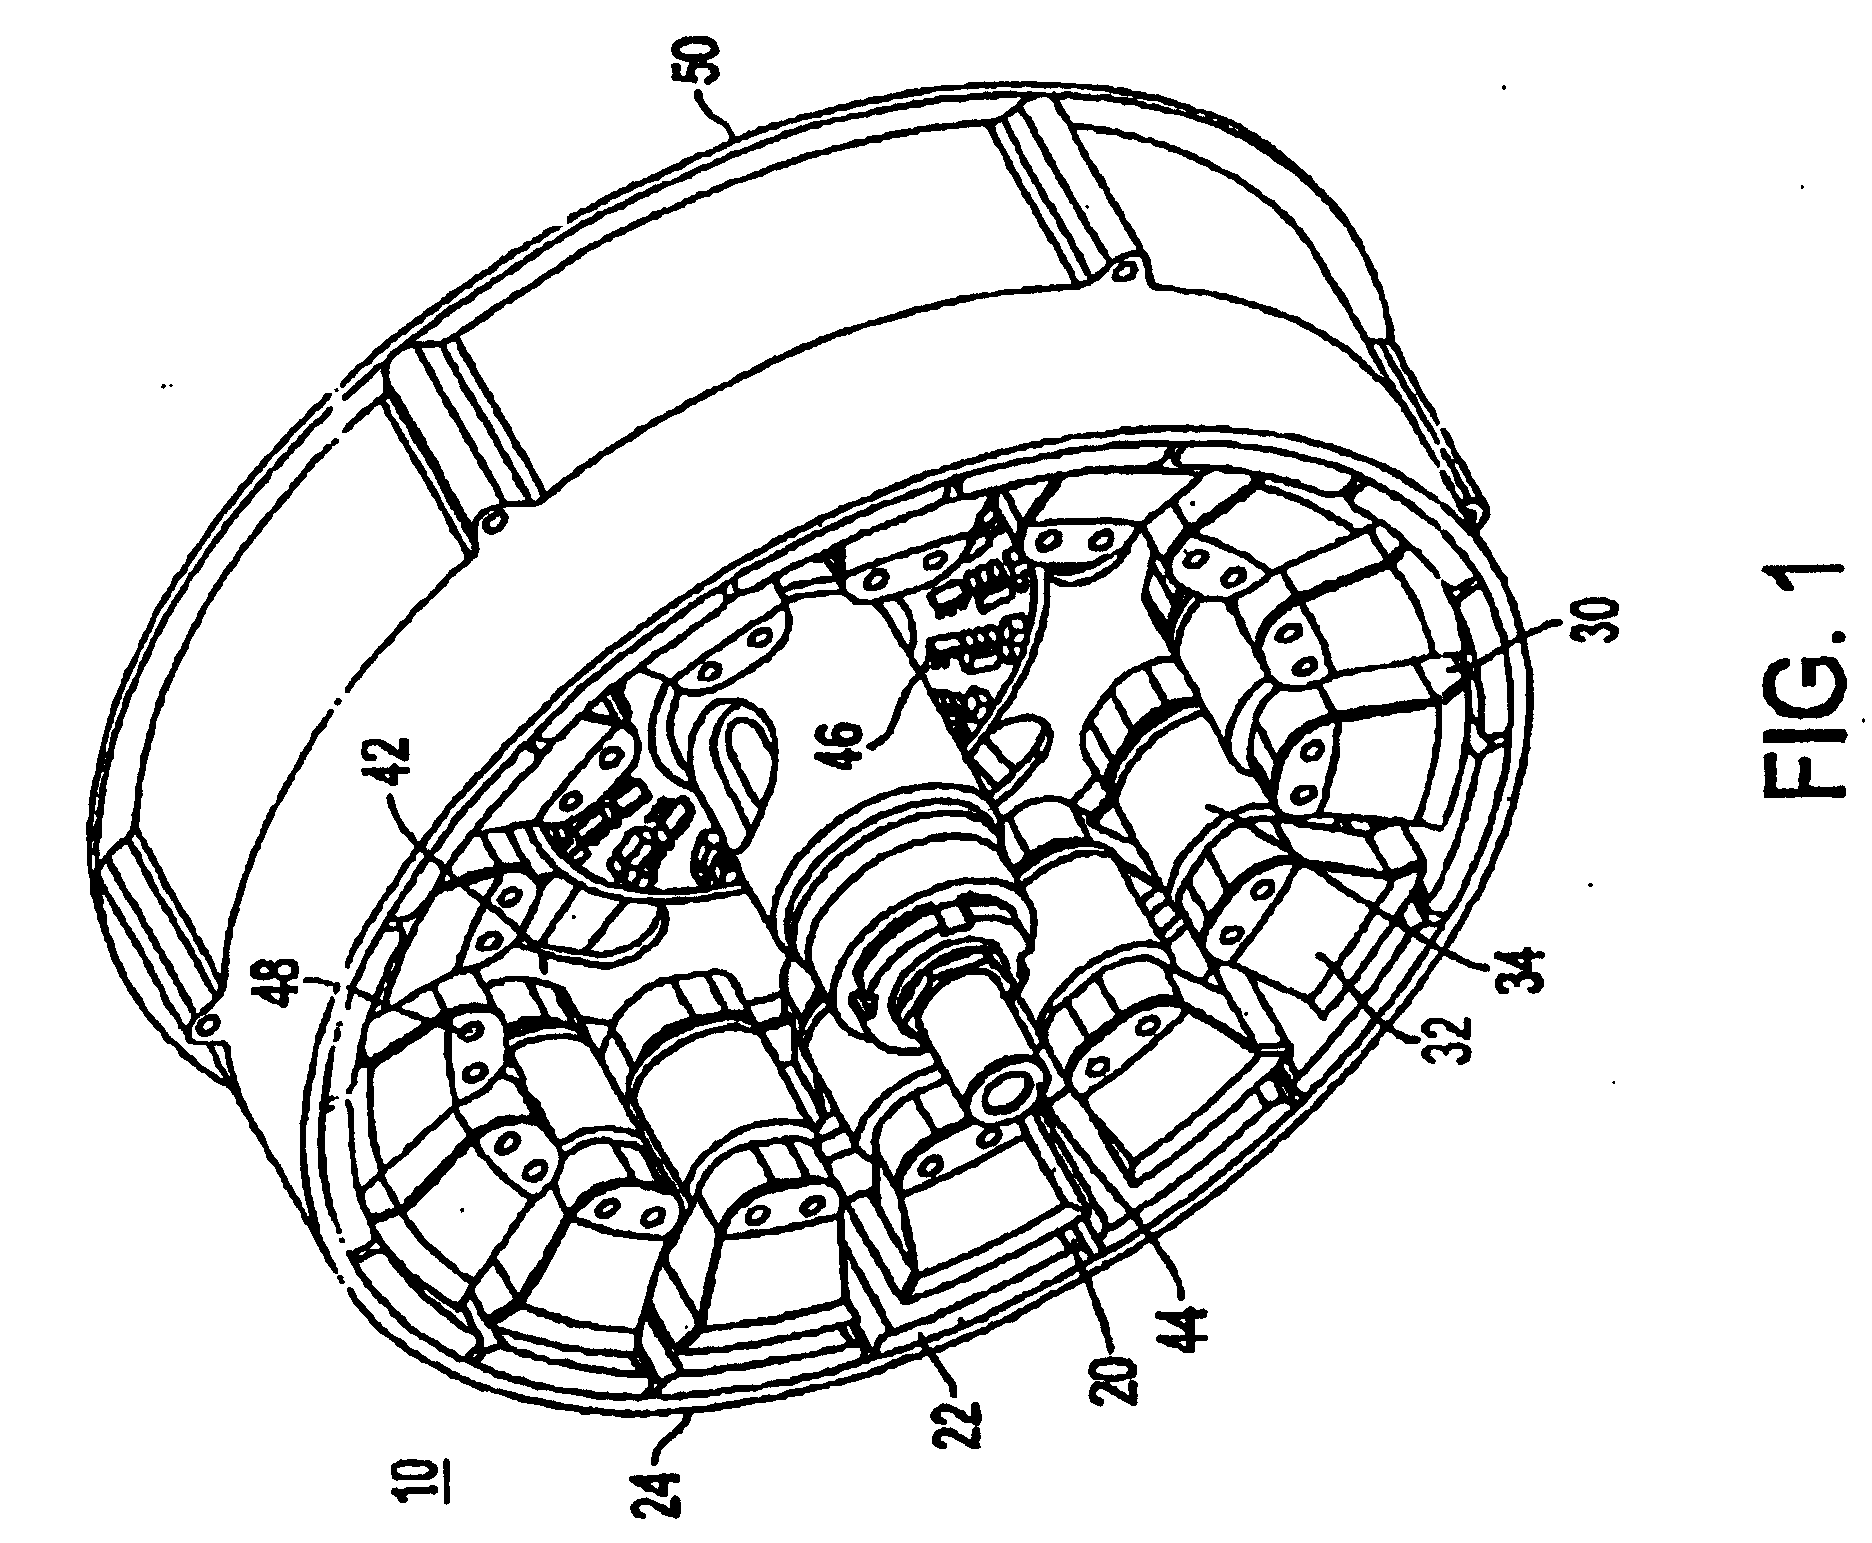 Protean Electric Motor Cost